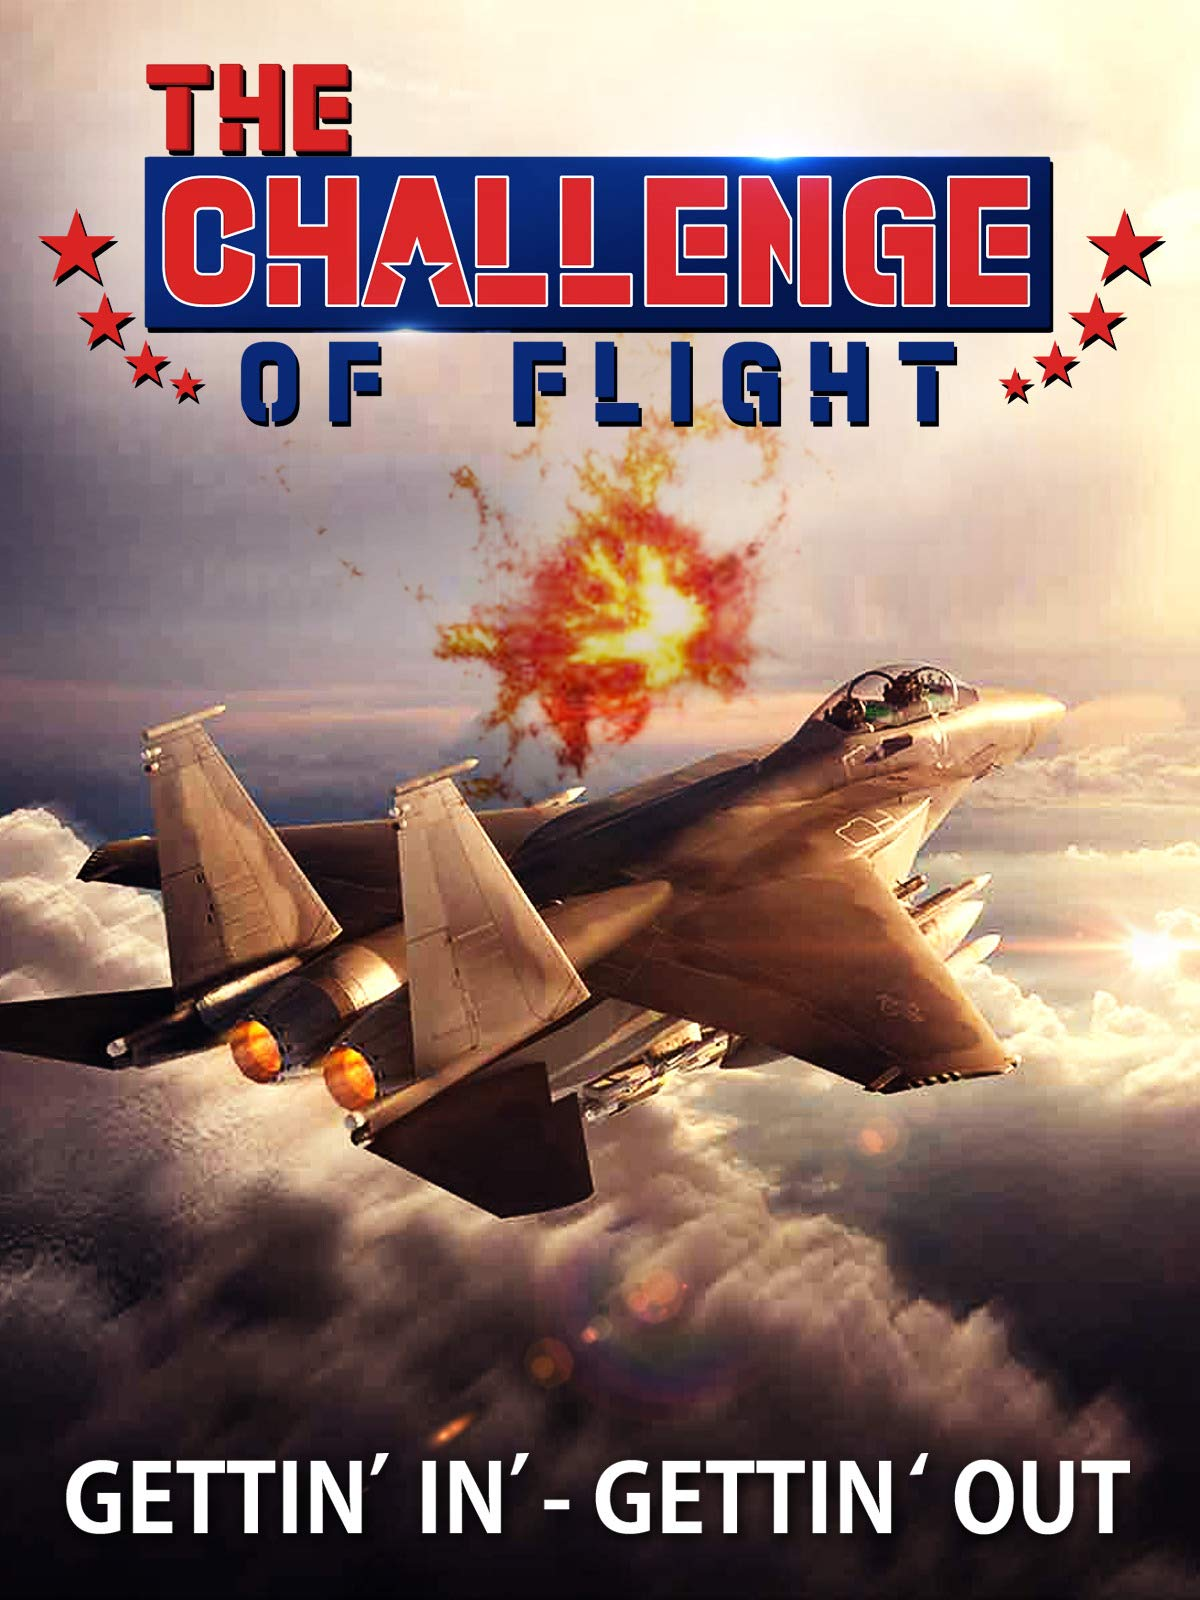 The Challenge of Flight - Gettin' In - Gettin' Out